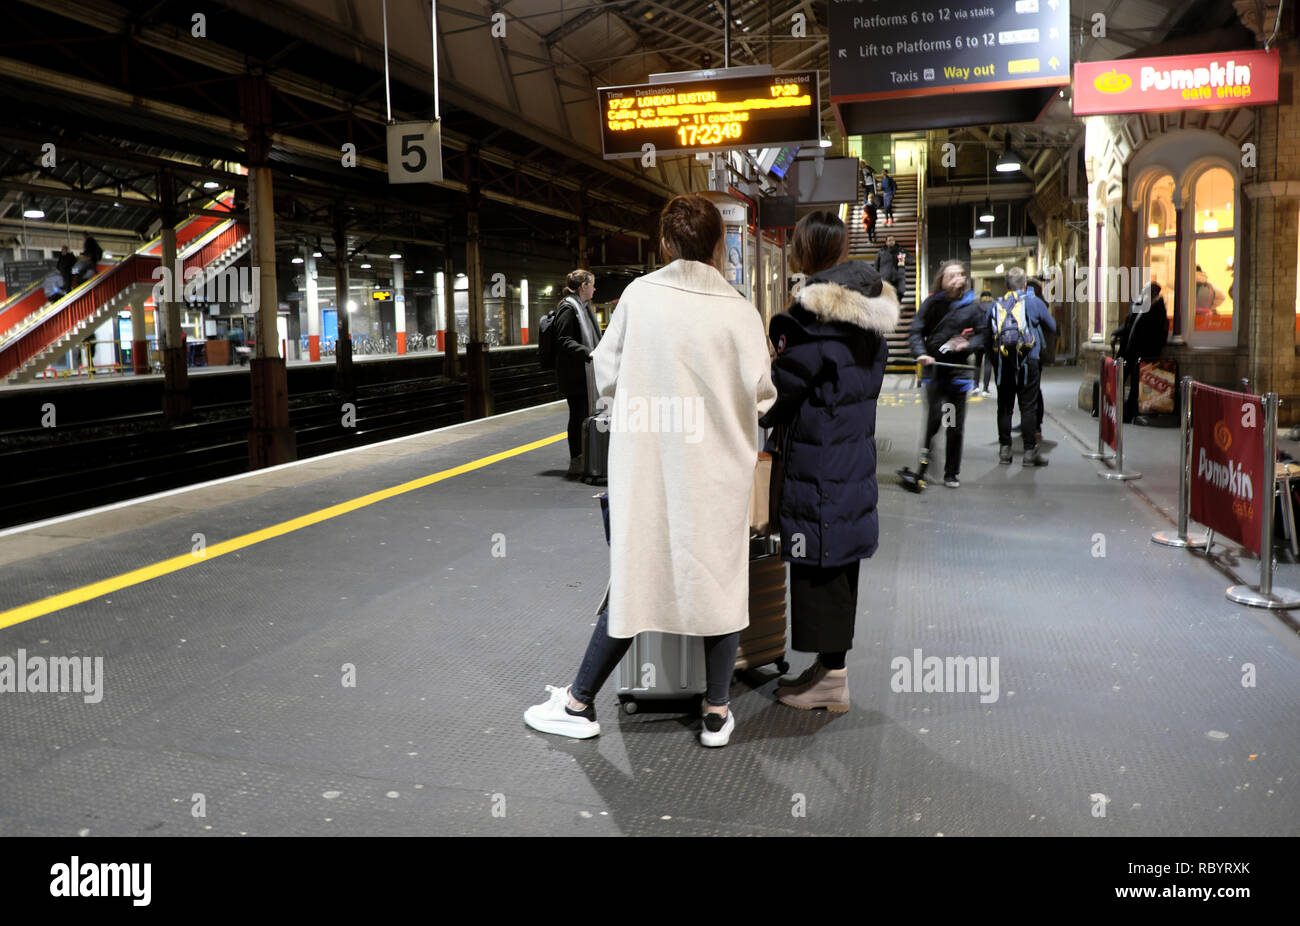 Rear view of passengers woman wearing white coat standing on platform at Crewe railway station waiting for a Virgin train to London UK    KATHY DEWITT - Stock Image